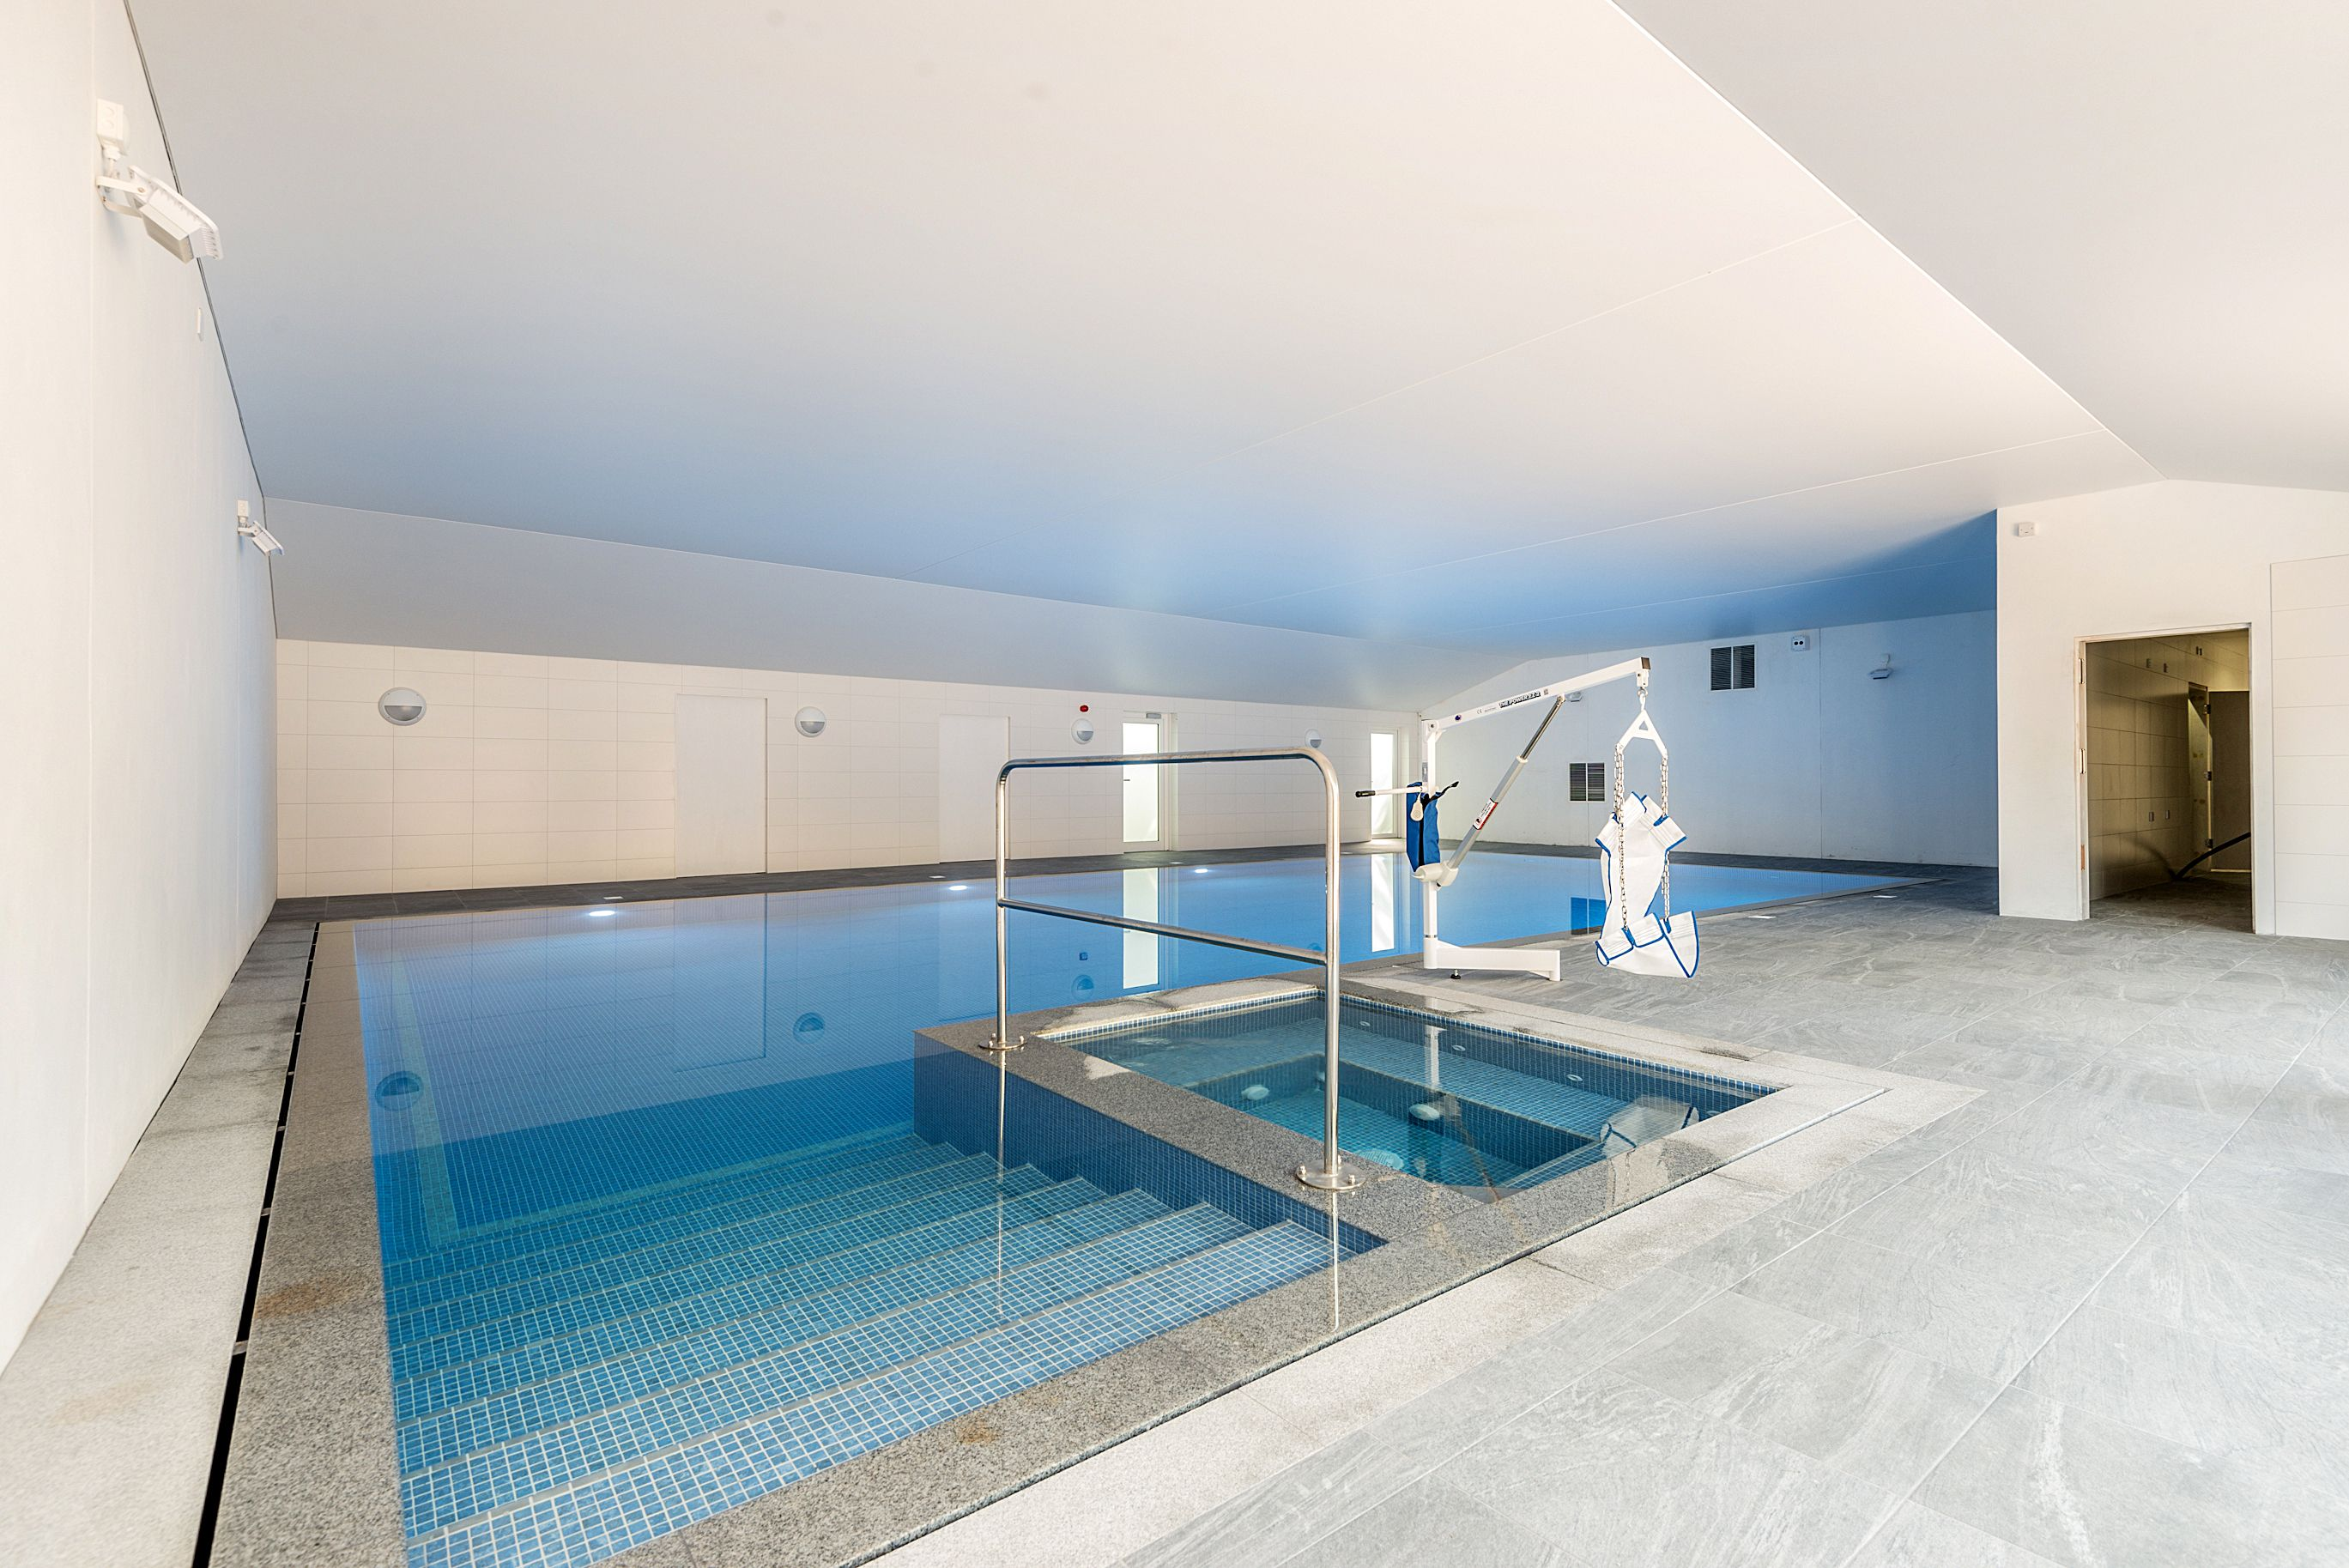 Wallops Wood Swimming Pool With Accessible Hoist Is 13M X